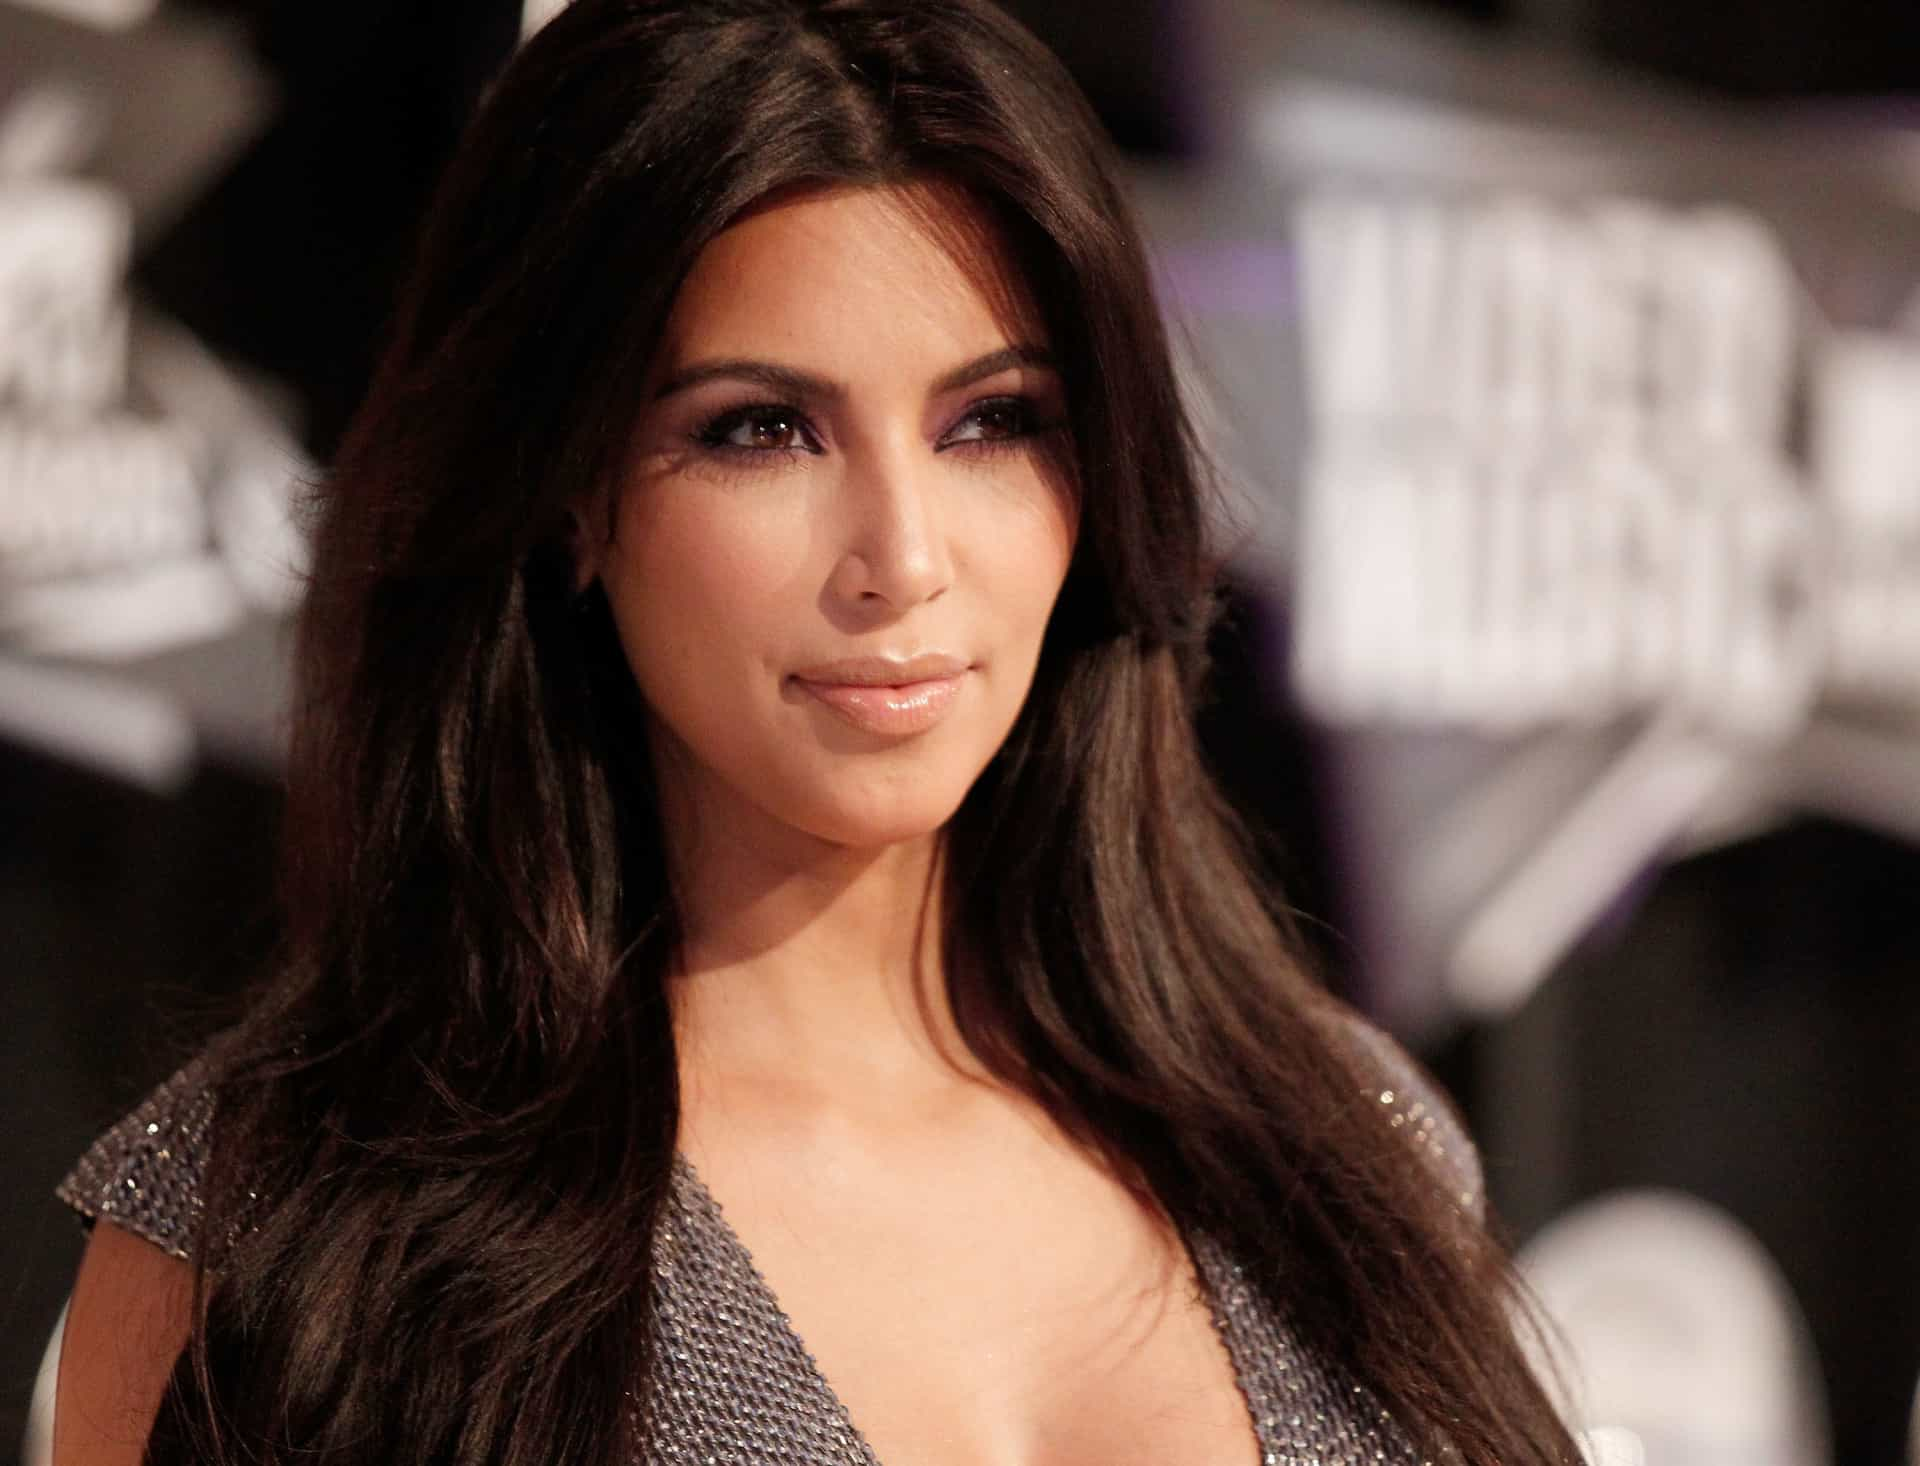 Stars who are famous for being famous